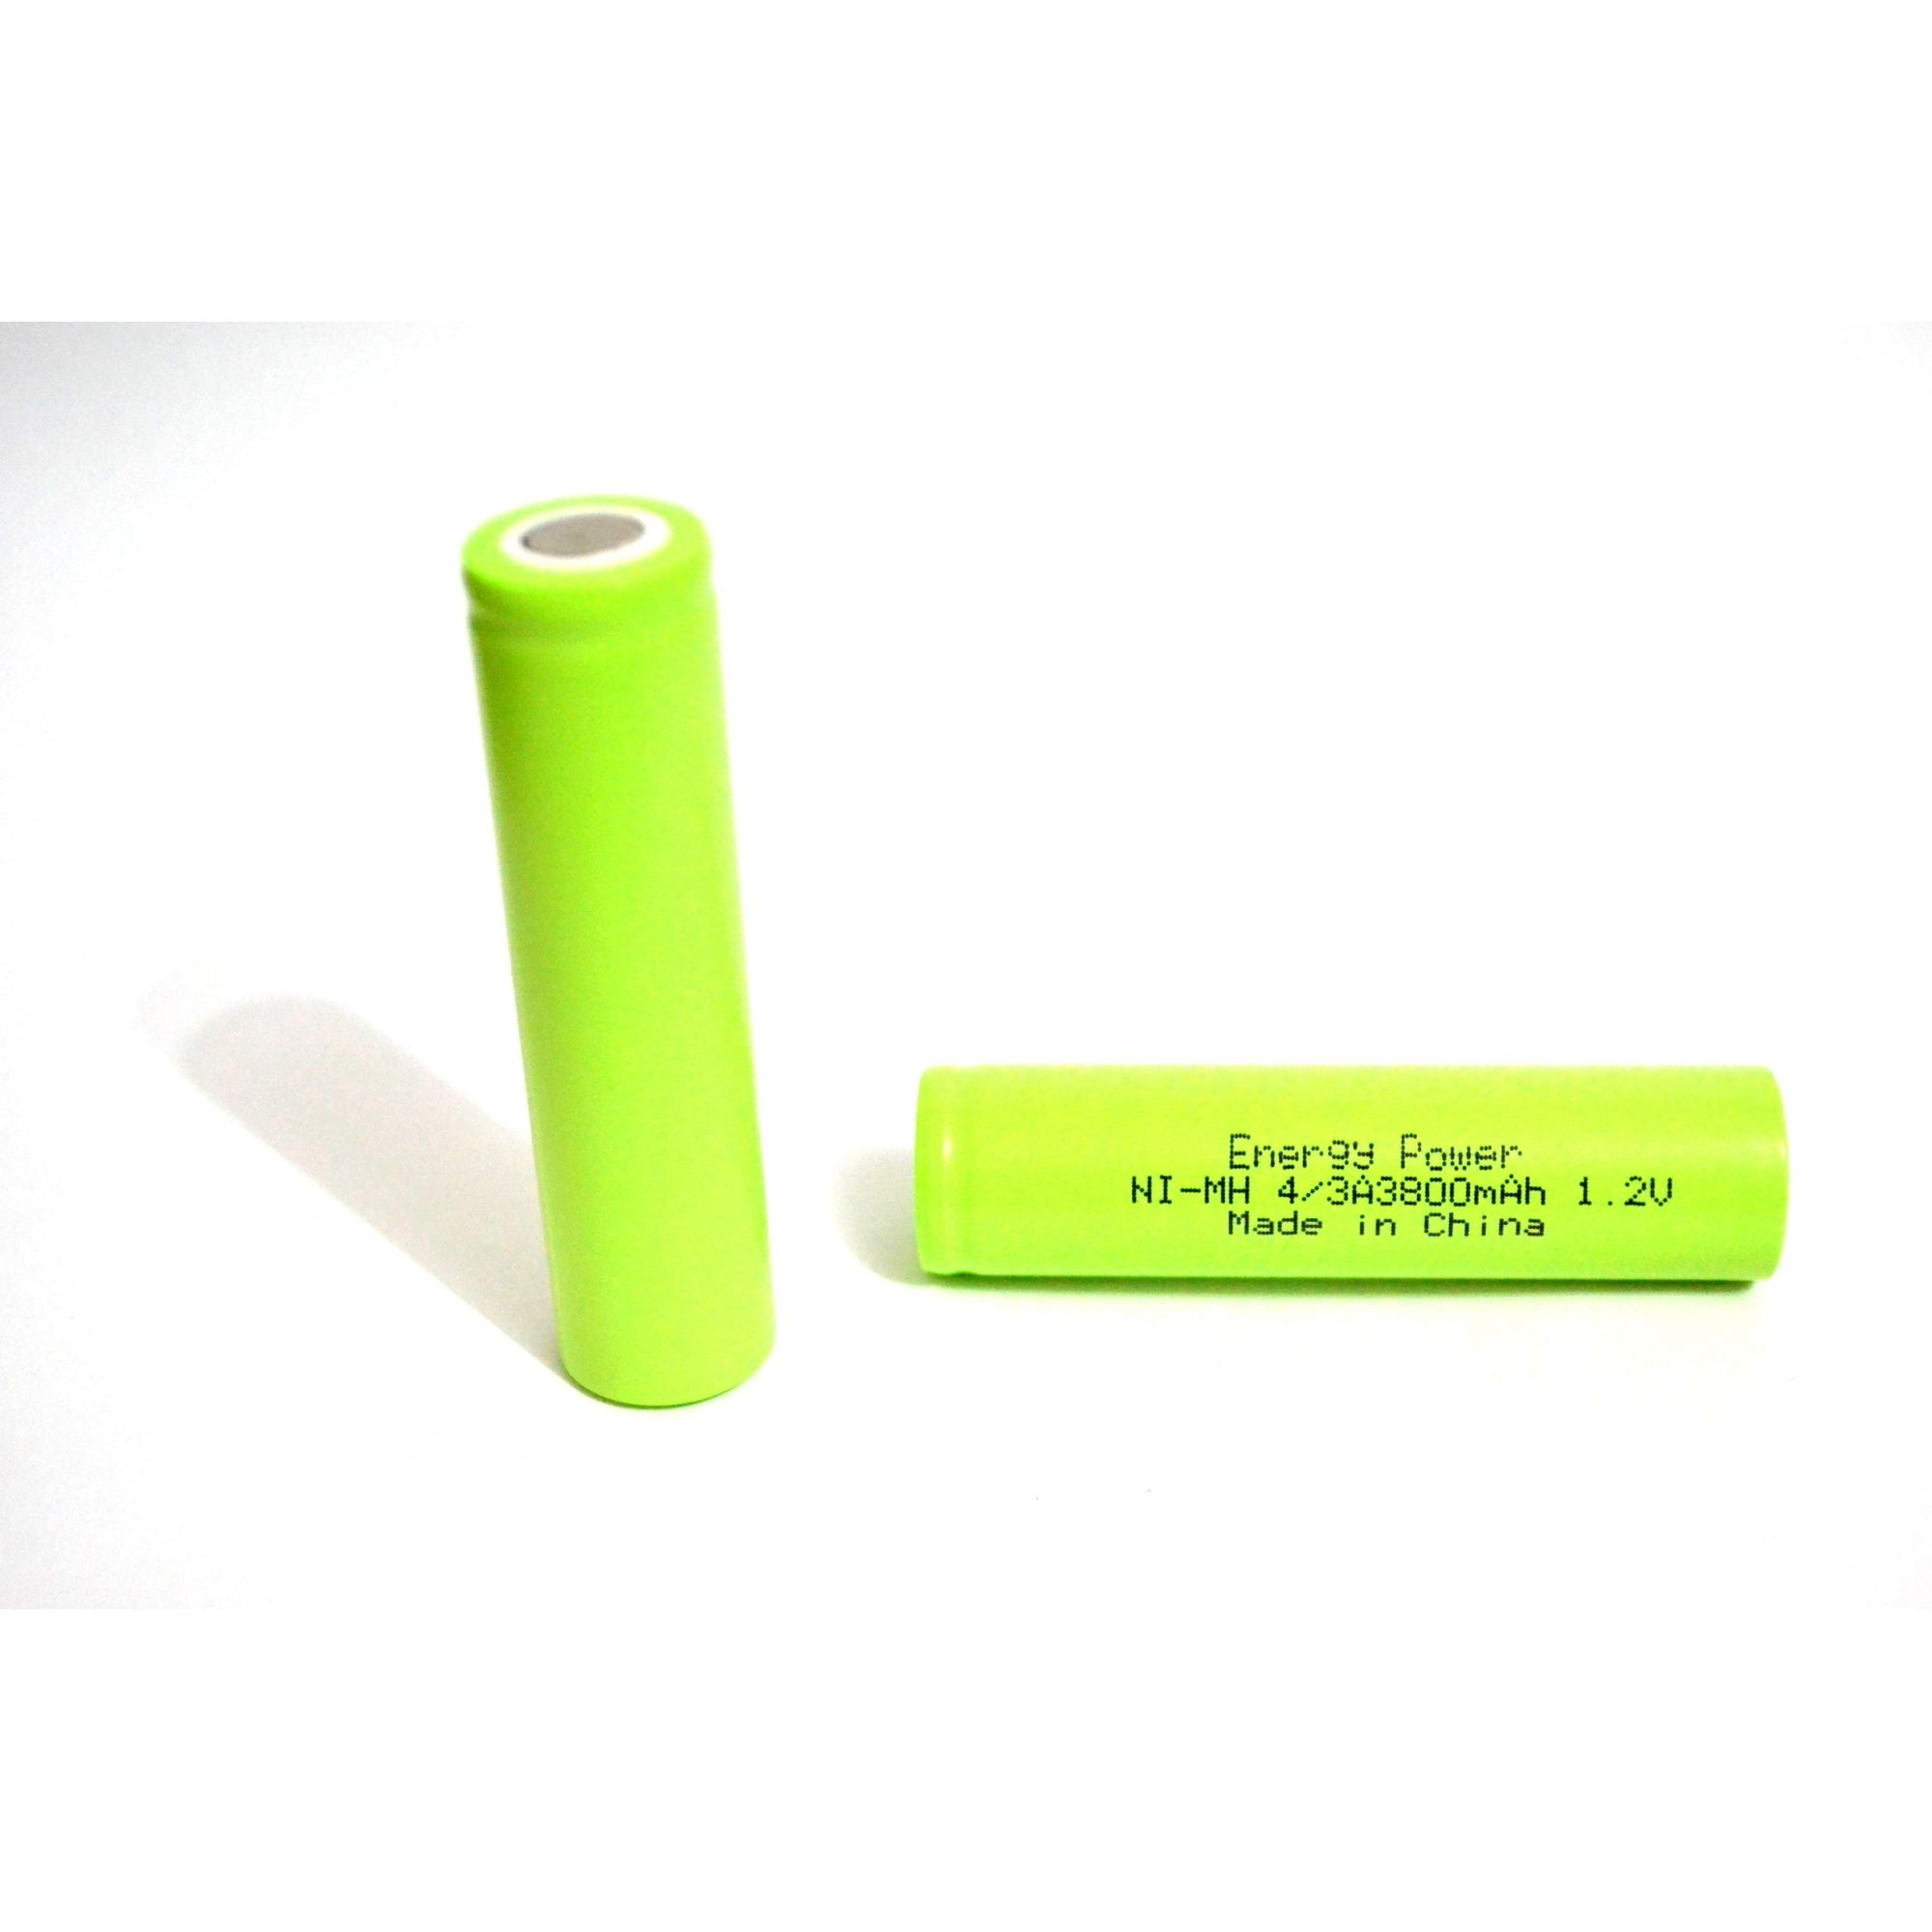 BATERIA ENERGY POWER  4/3A 3800MAH 1,2V NI-MH